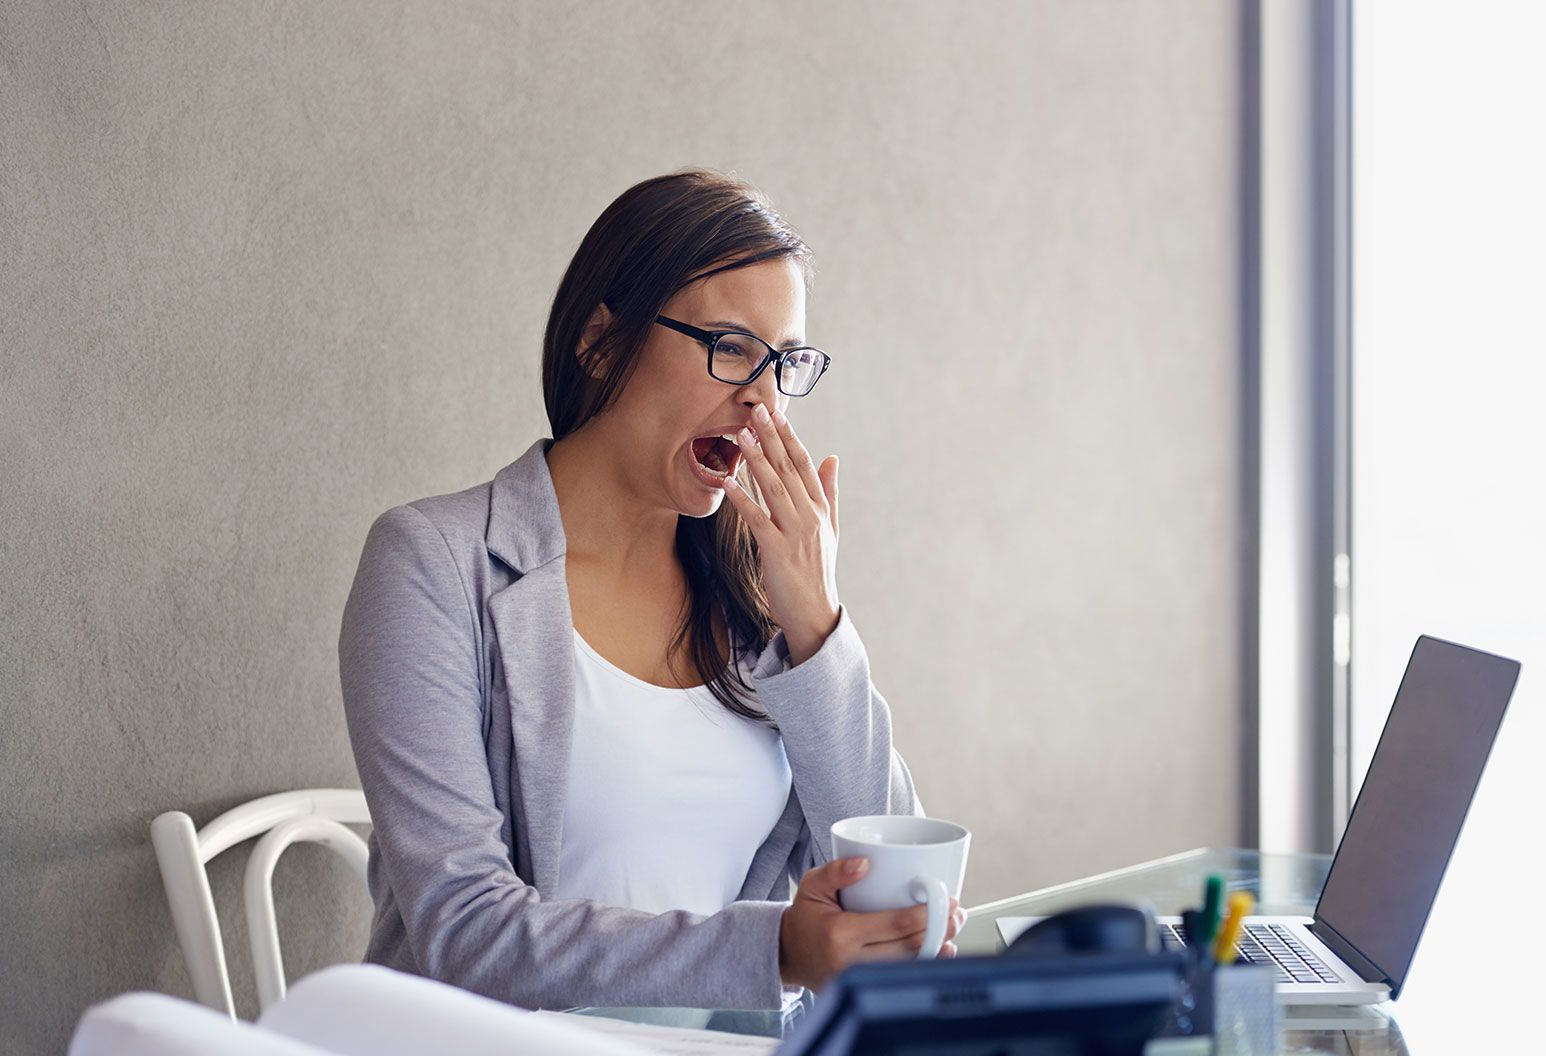 Thyroids causing exhaustion and weight gain: A woman in glasses wearing a grey blazer over her white blouse yawns as she sits at a desk. She is covering her mouth with one hand while holding a ceramic white cup in the other. On the desk is an open laptop.